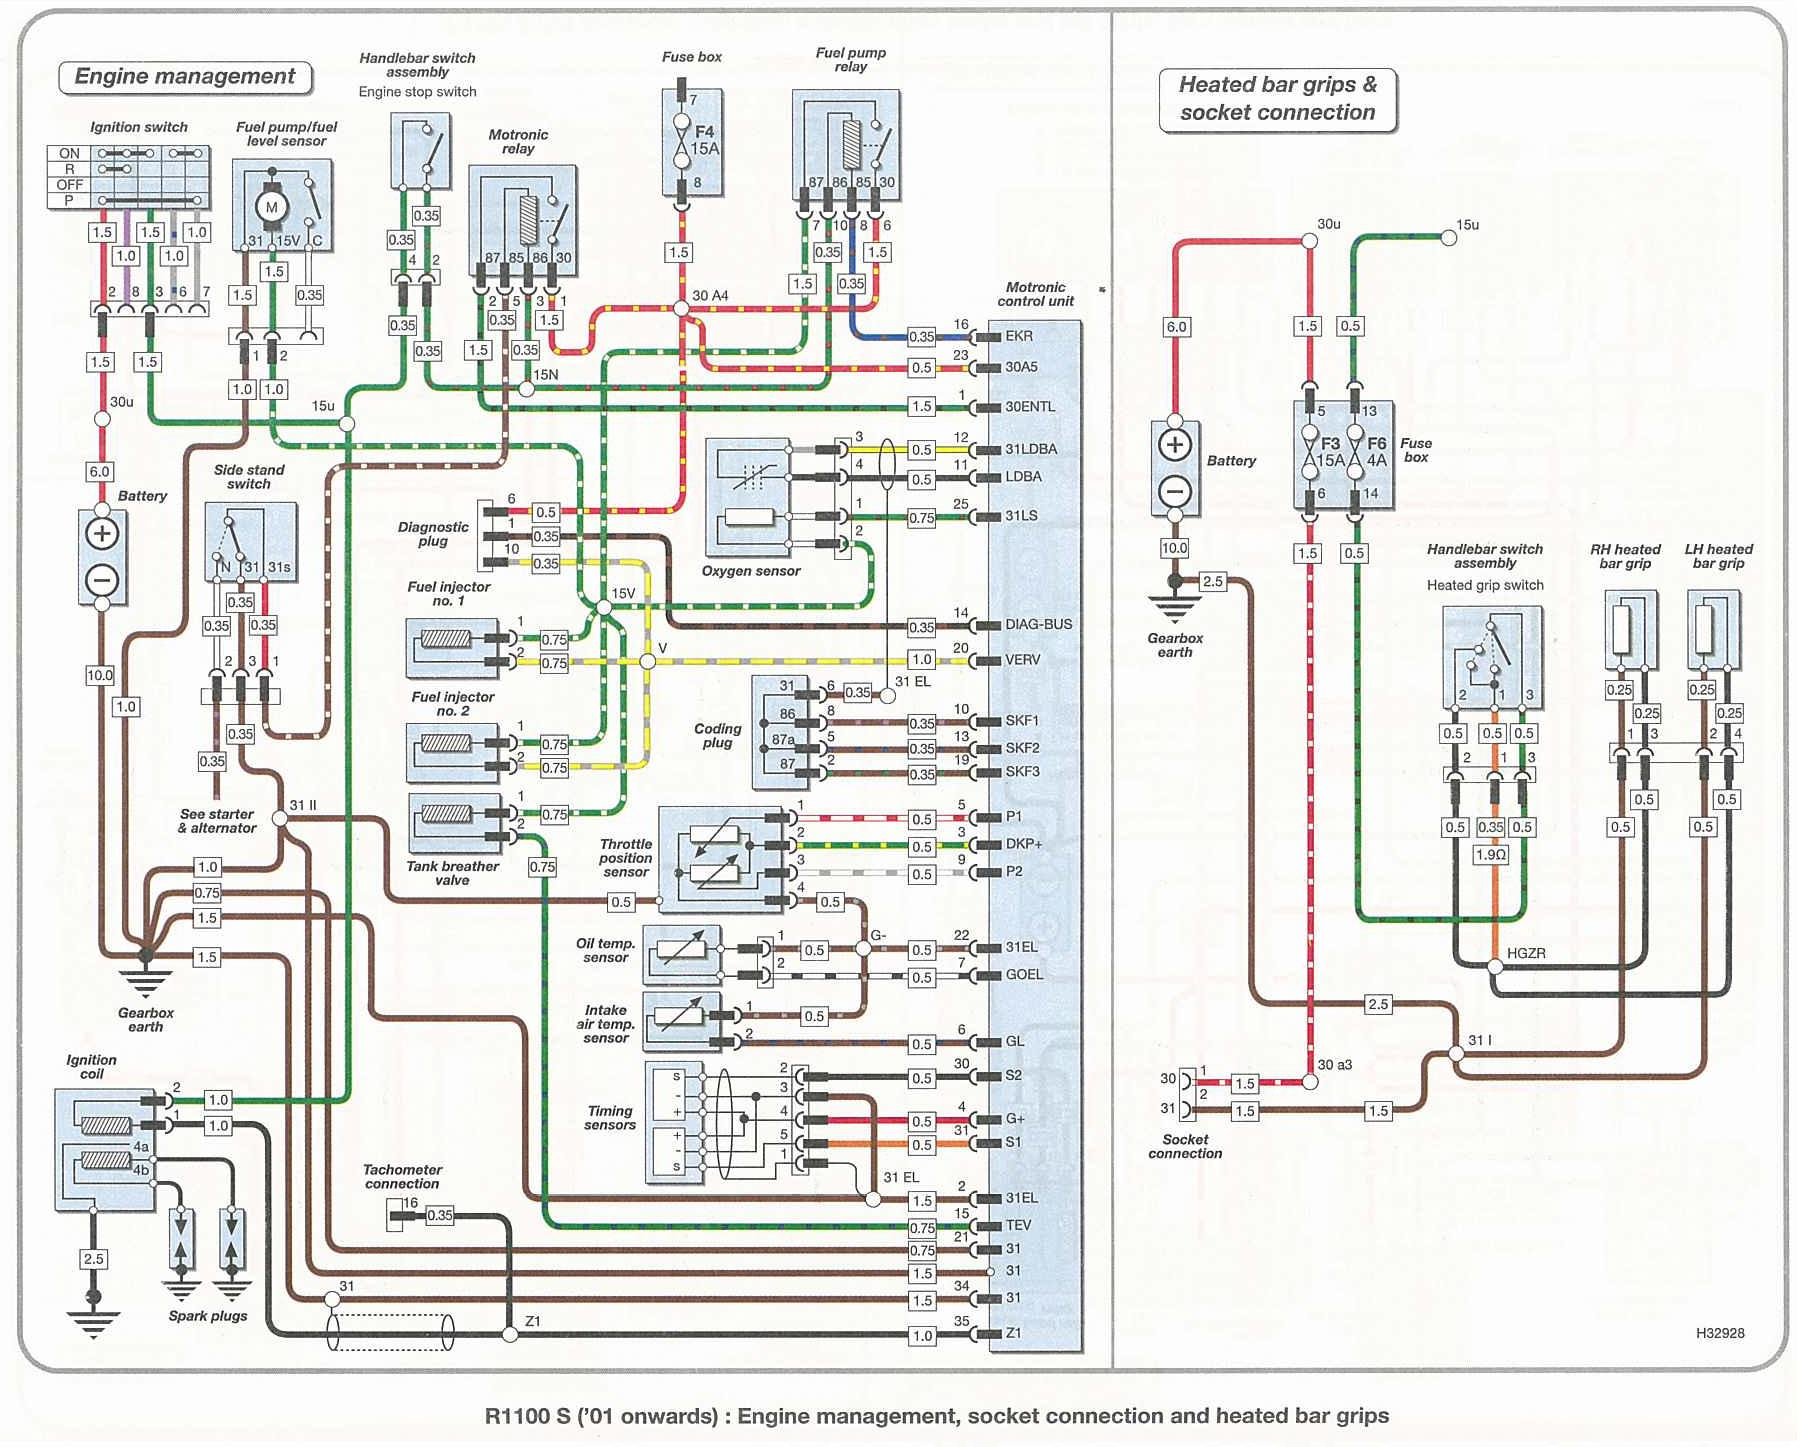 wiring07 bmw r1100s wiring diagrams bmw wiring diagrams at mifinder.co